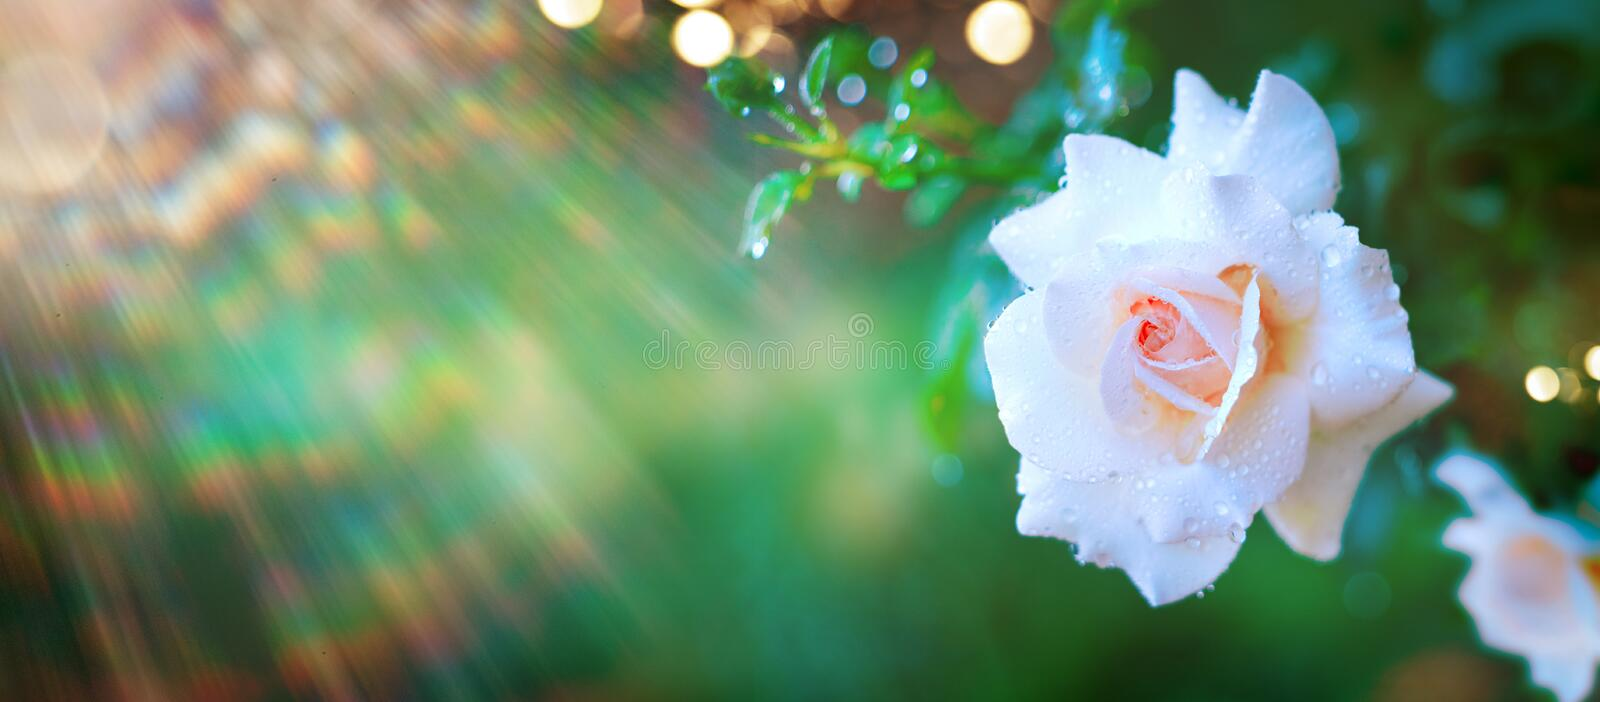 Beautiful Rose flower blooming in summer garden. Roses growing outdoors, nature, blossoming flower art design royalty free stock photography